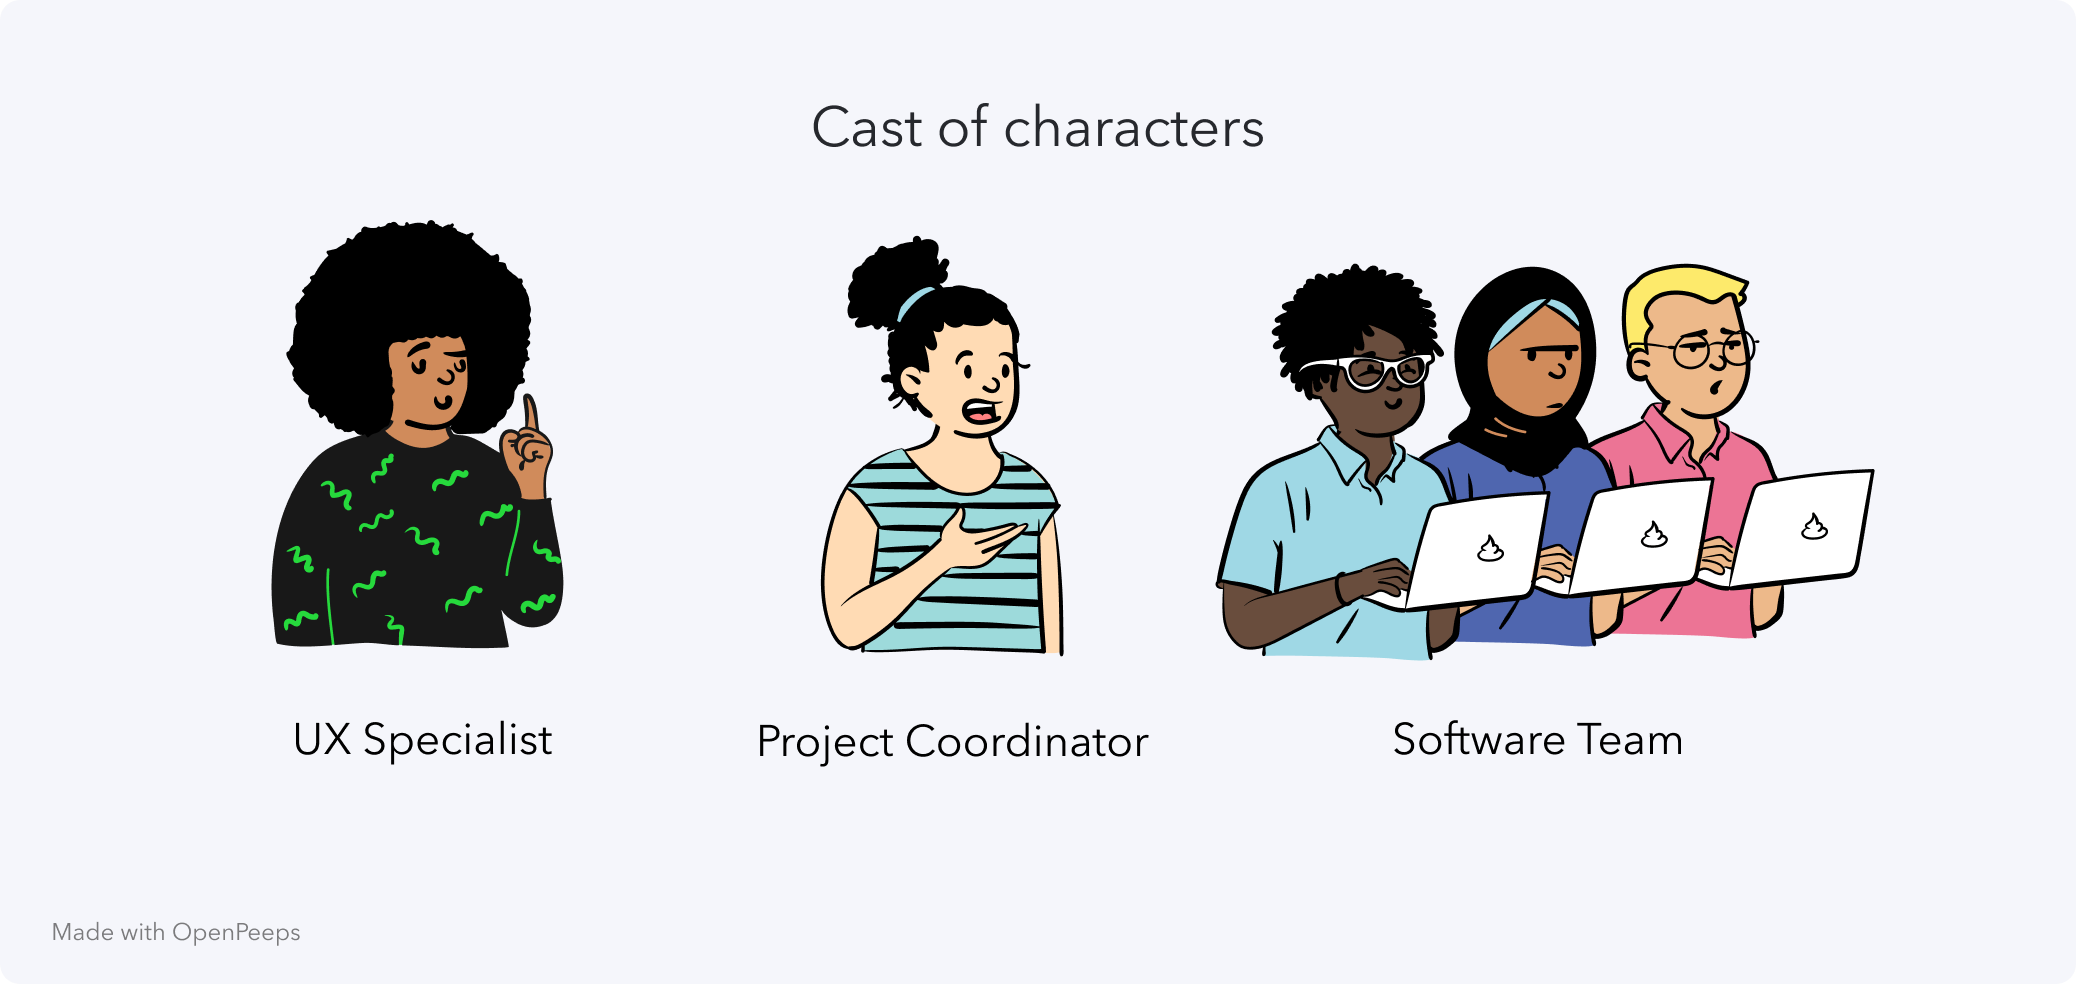 An illustration of the cast for this mystery shows a UX Specialist, a Project Coordinator and the Software Team, composed of 3 members with laptops.